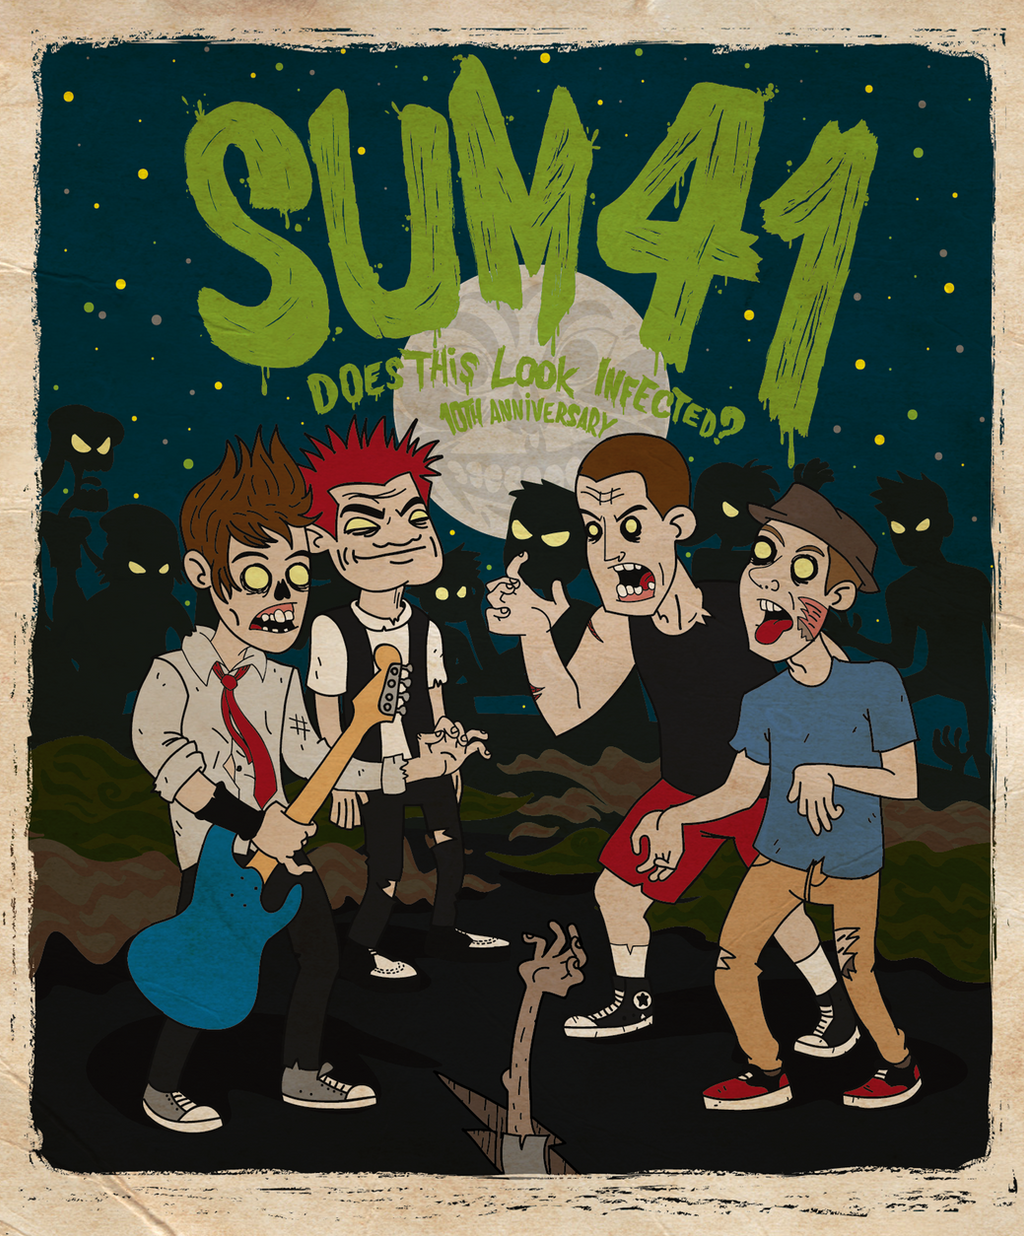 Sum 41 - Does This Look Infected? (Edited Version)